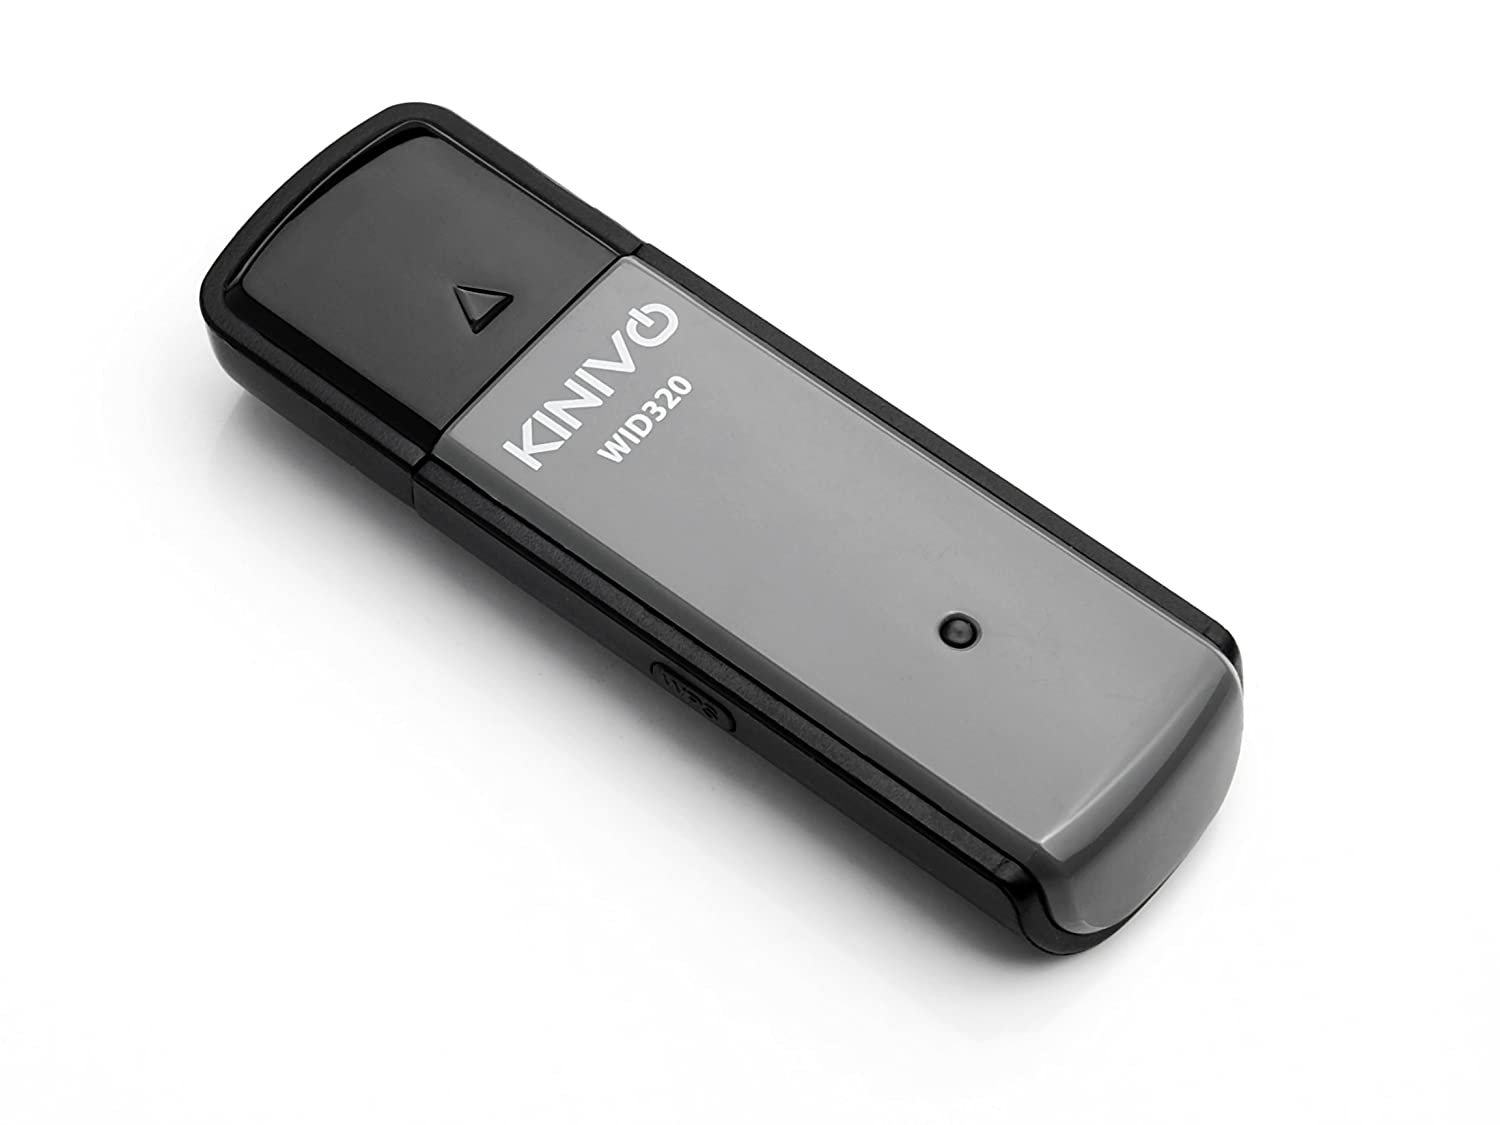 Kinivo 300Mbps Wireless-N USB Adapter – (802.11b/g/n) – Supports Windows 8/ Windows 7/ Vista/ XP $9.99